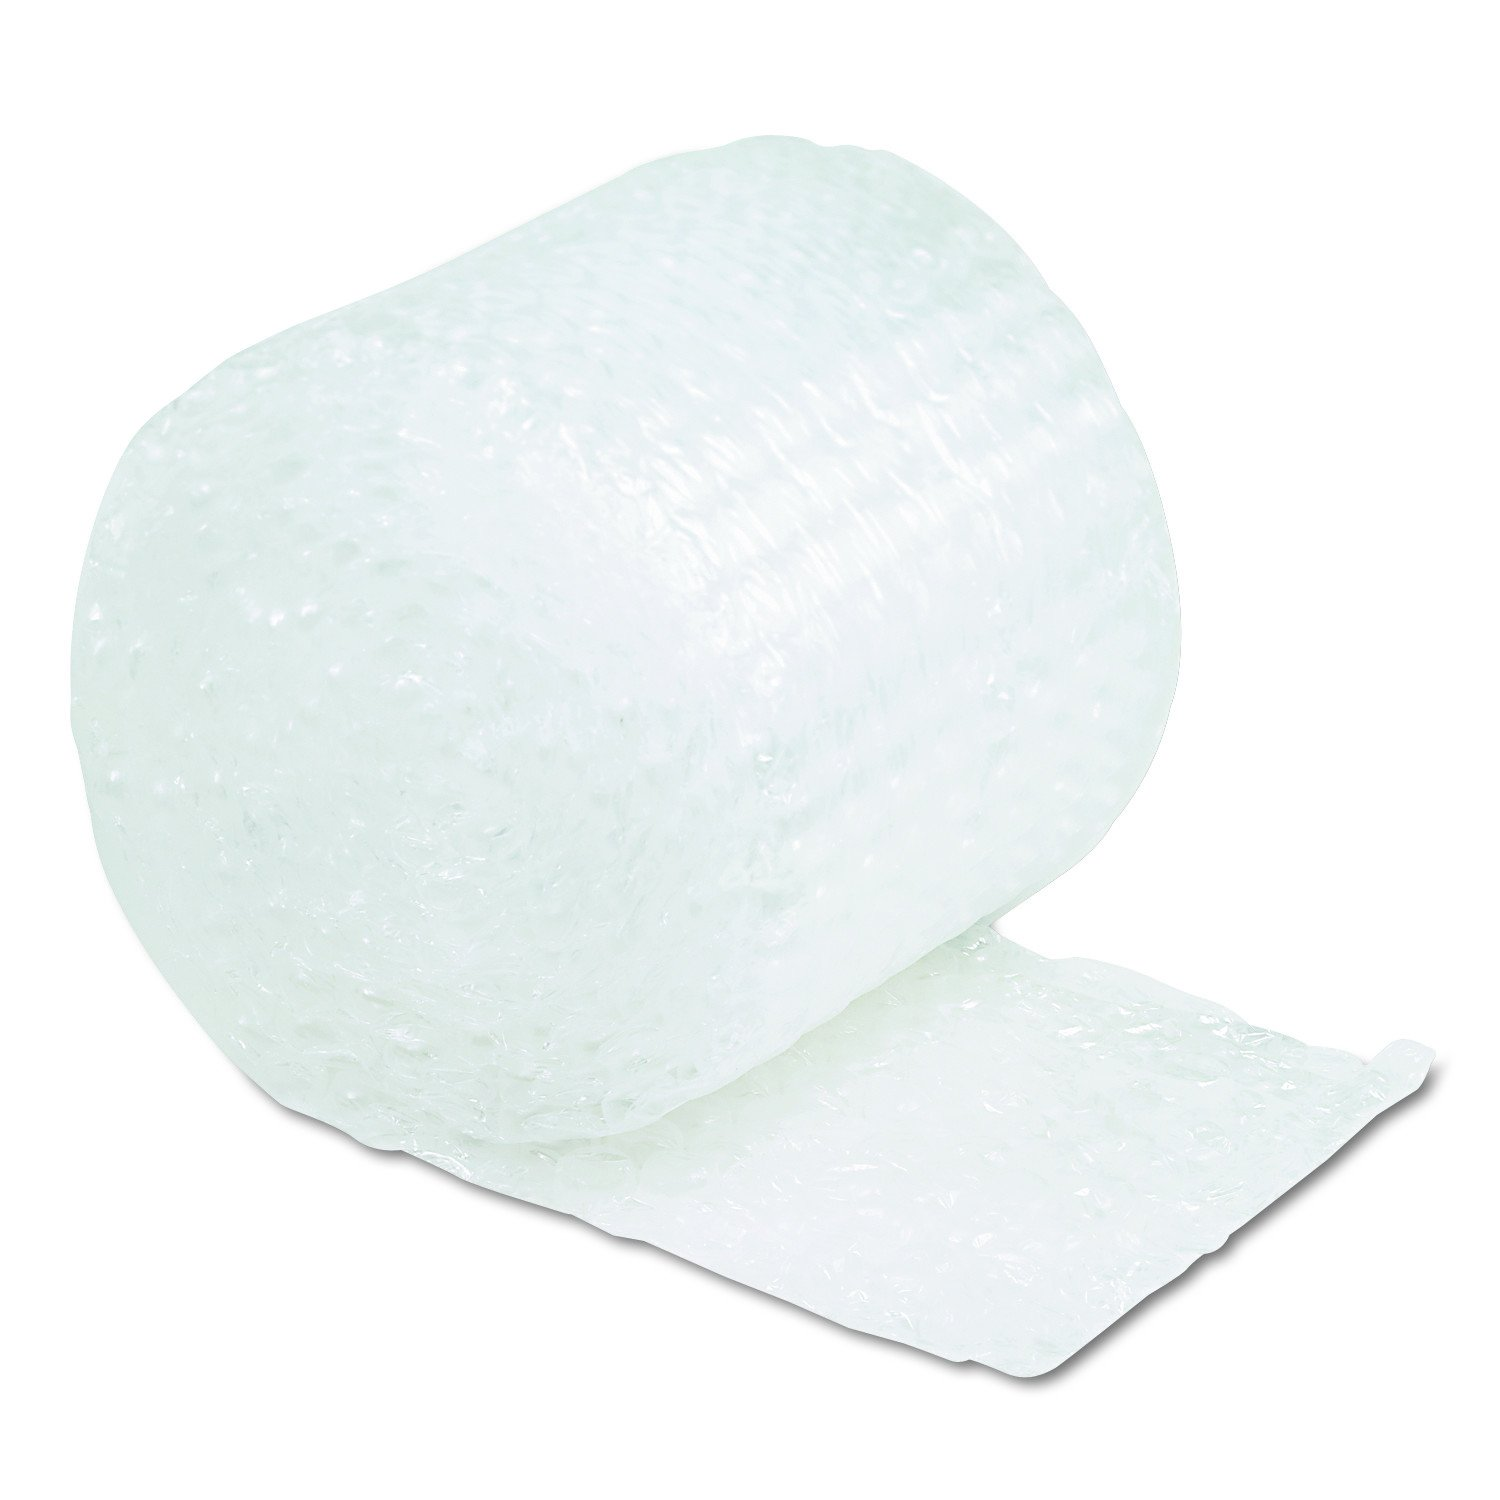 Sealed Air Bubble Wrap, Cushion Bubble Roll, 0.5-Inch Thick, 30 Feet (15989)